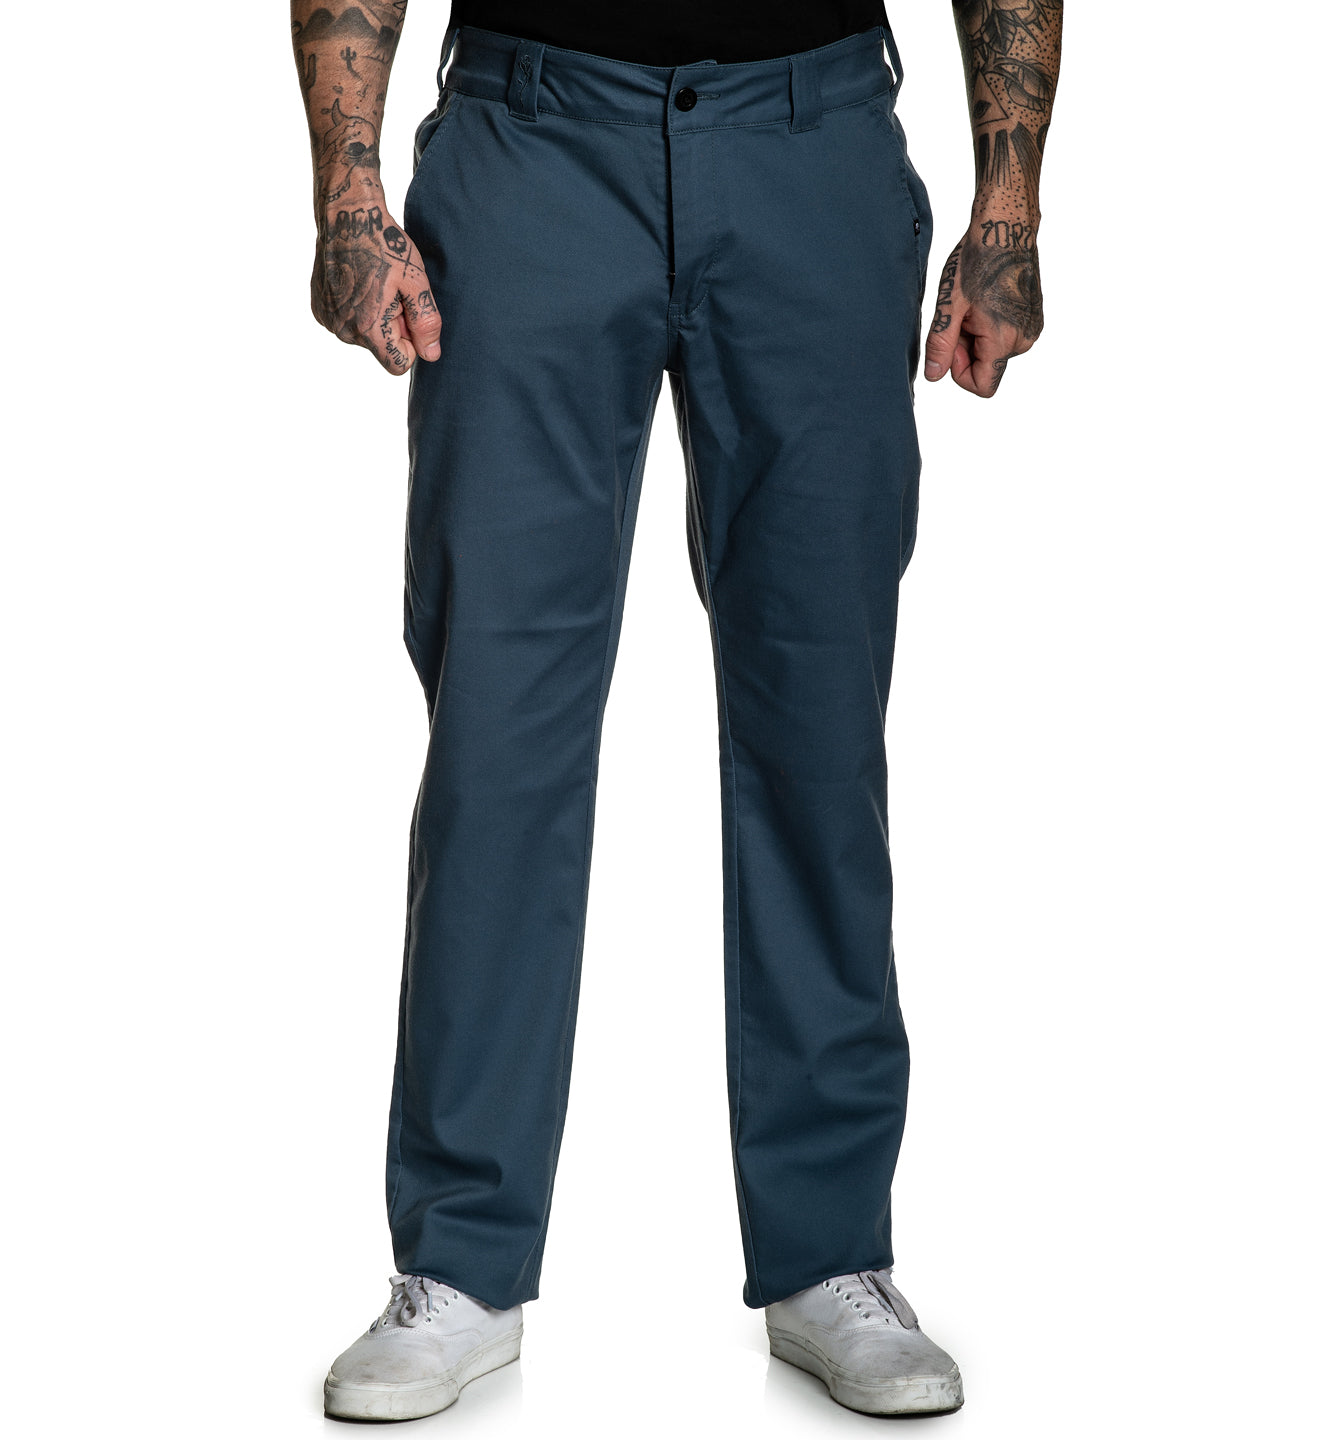 925 Relaxed fit Chino Stretch Pant Orion Blue